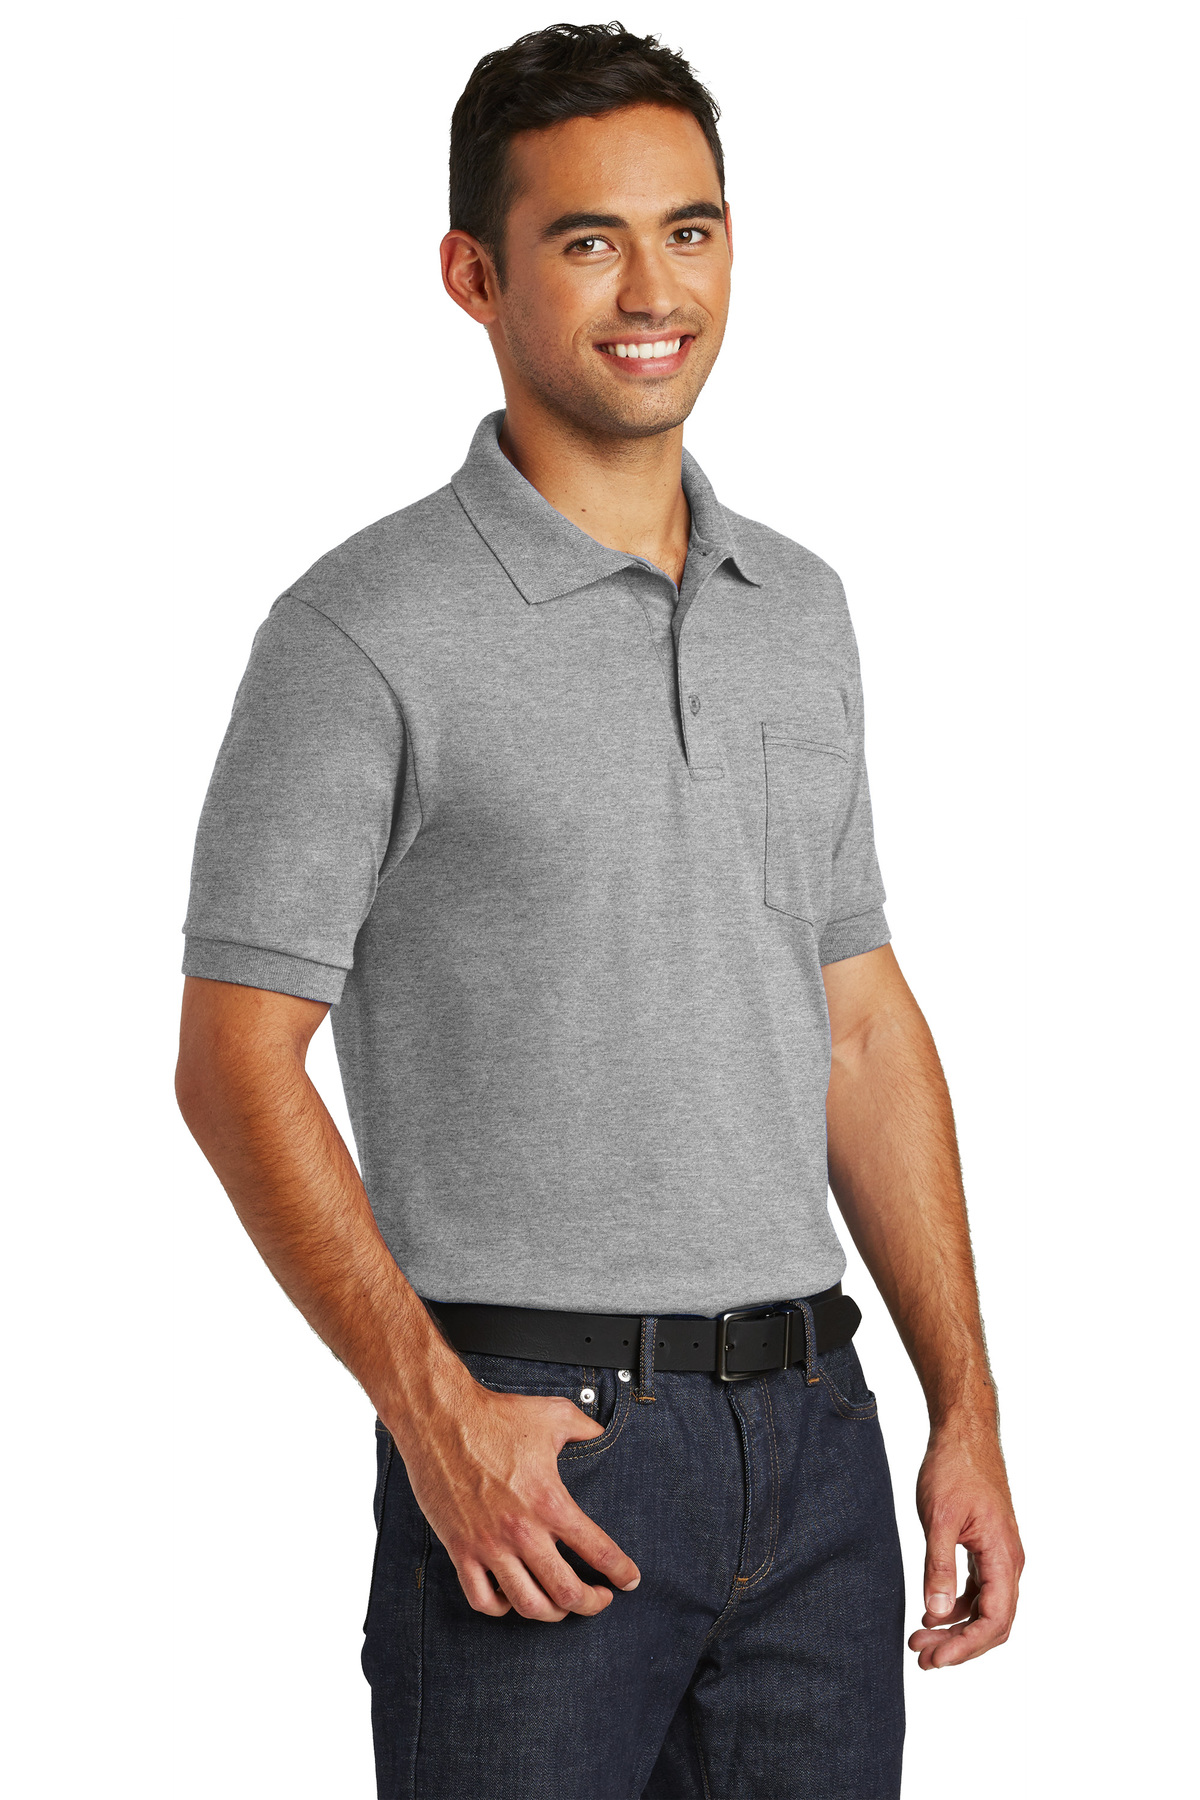 8b3f0104667 ... Jersey Knit Pocket Polo. A maximum of 8 logos have been uploaded.  Please remove a logo from My Logos to continue